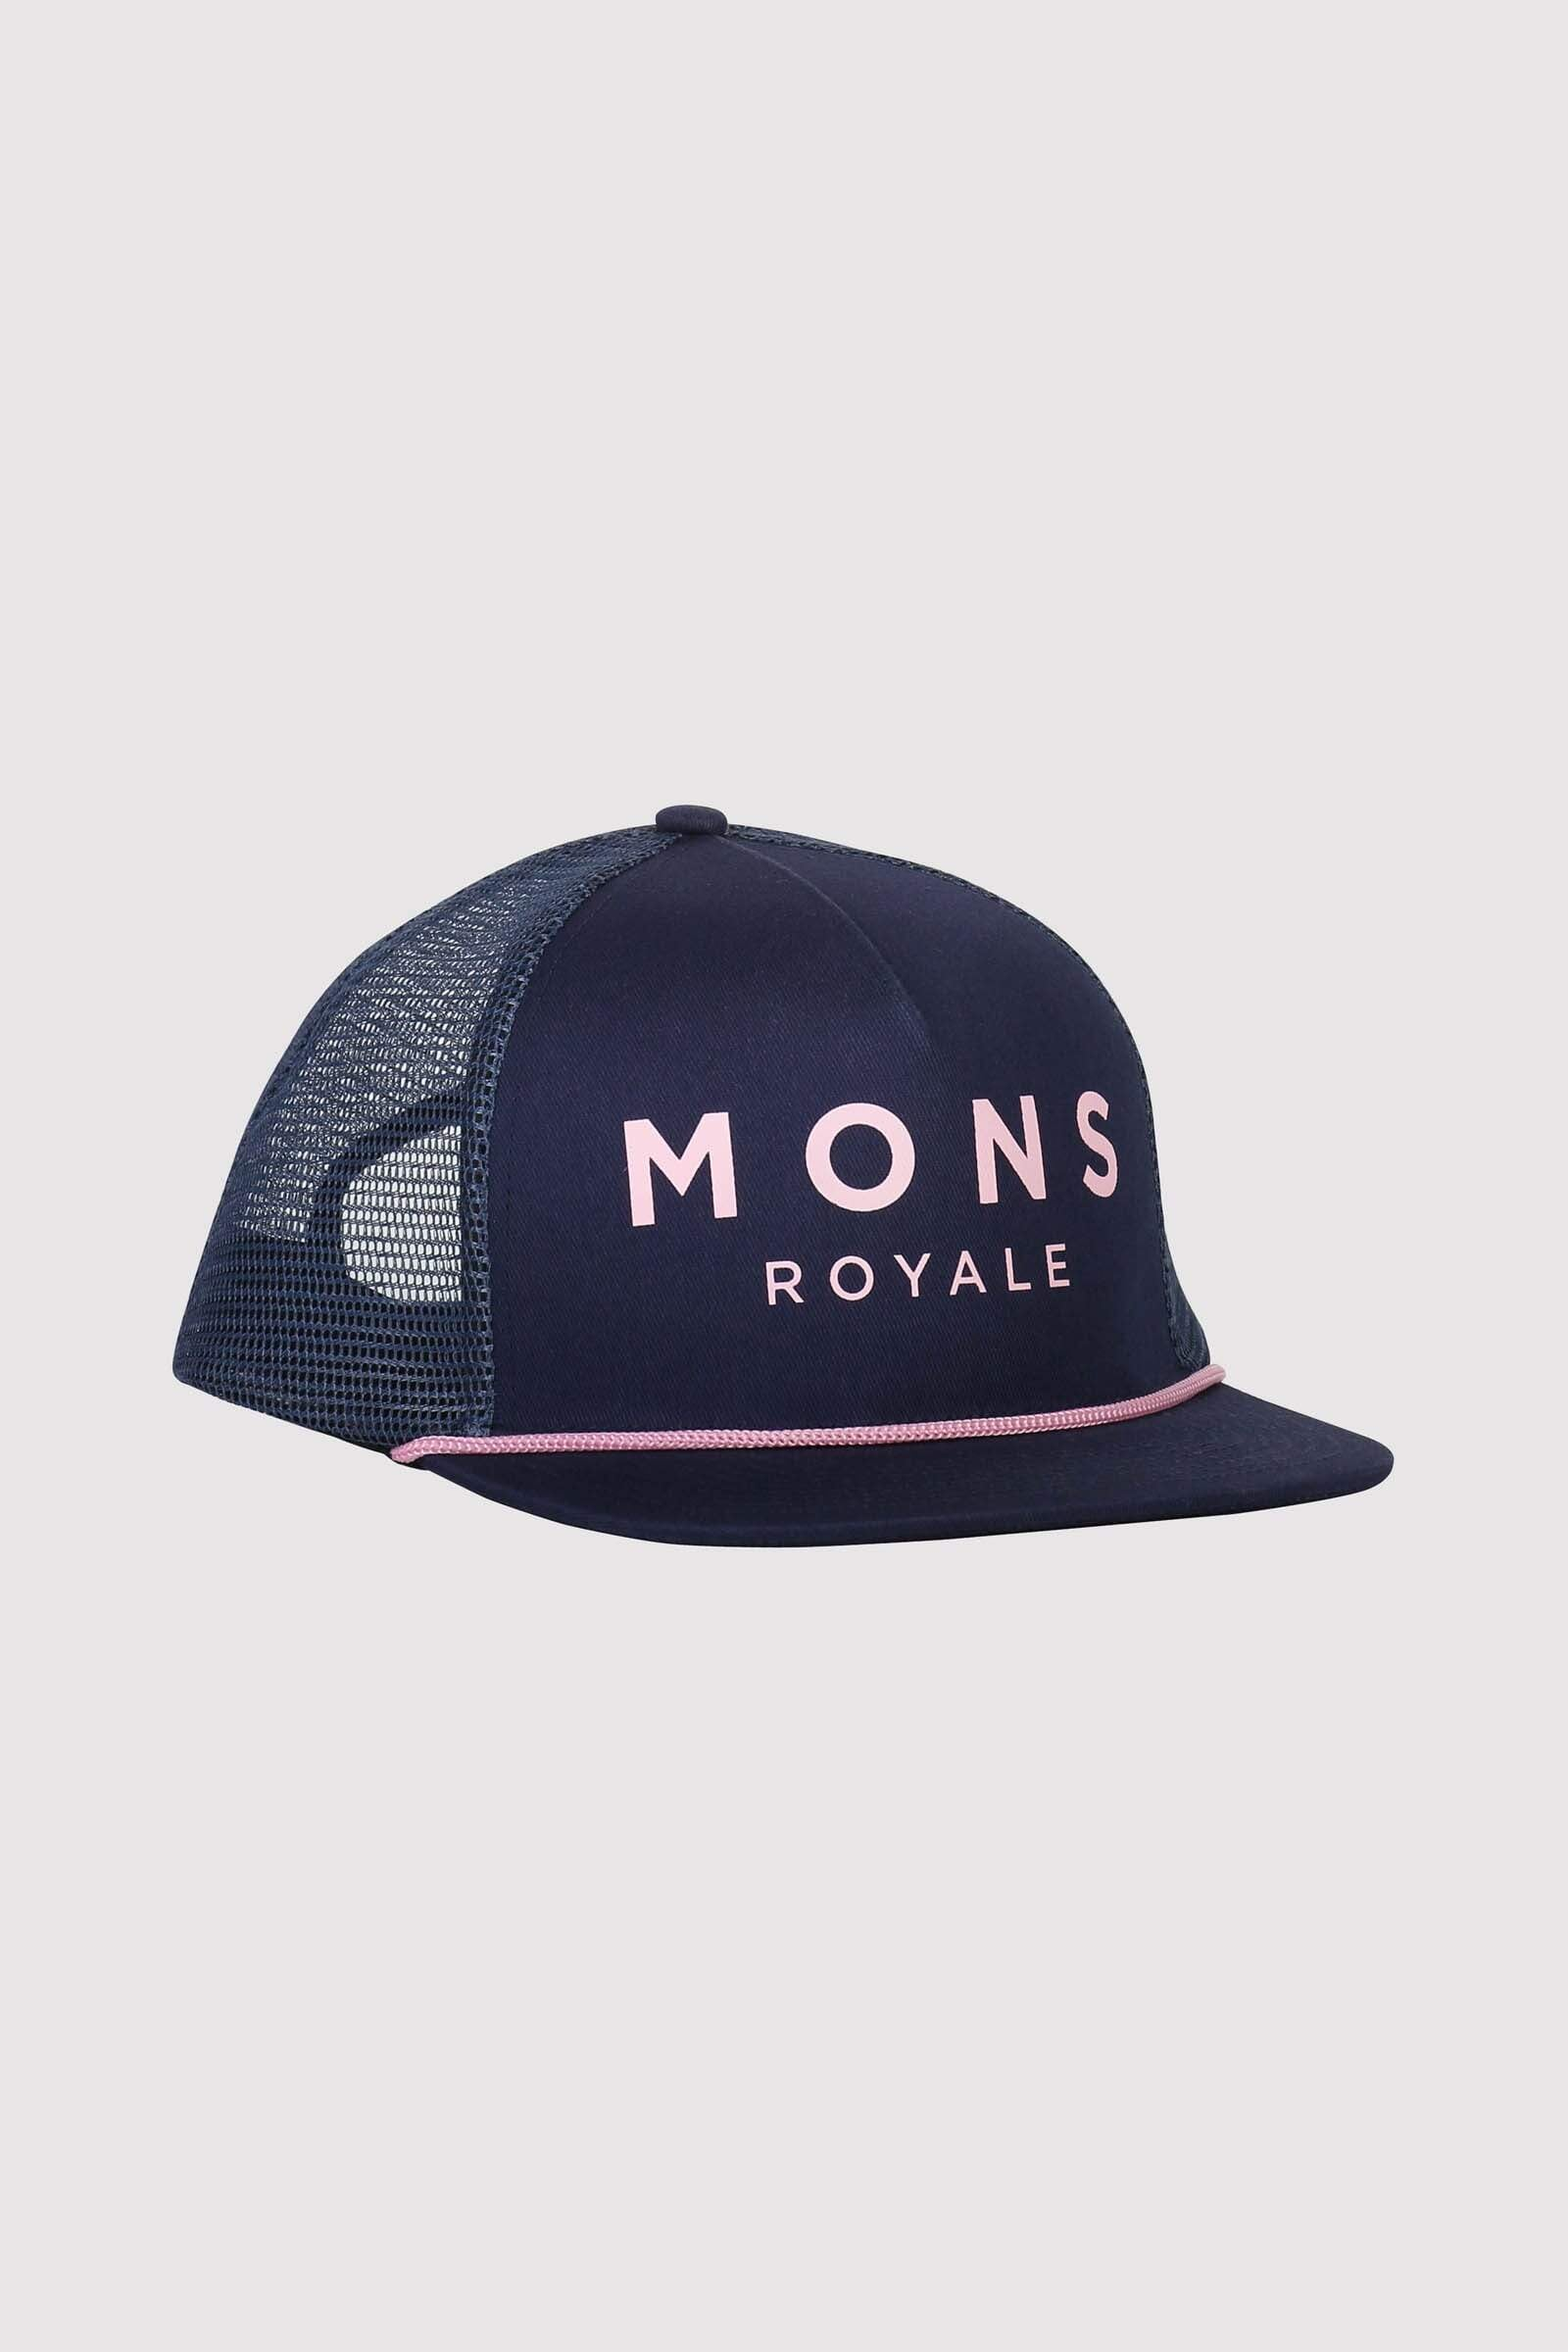 The ACL Trucker Cap - Dark Denim / Powder Pink